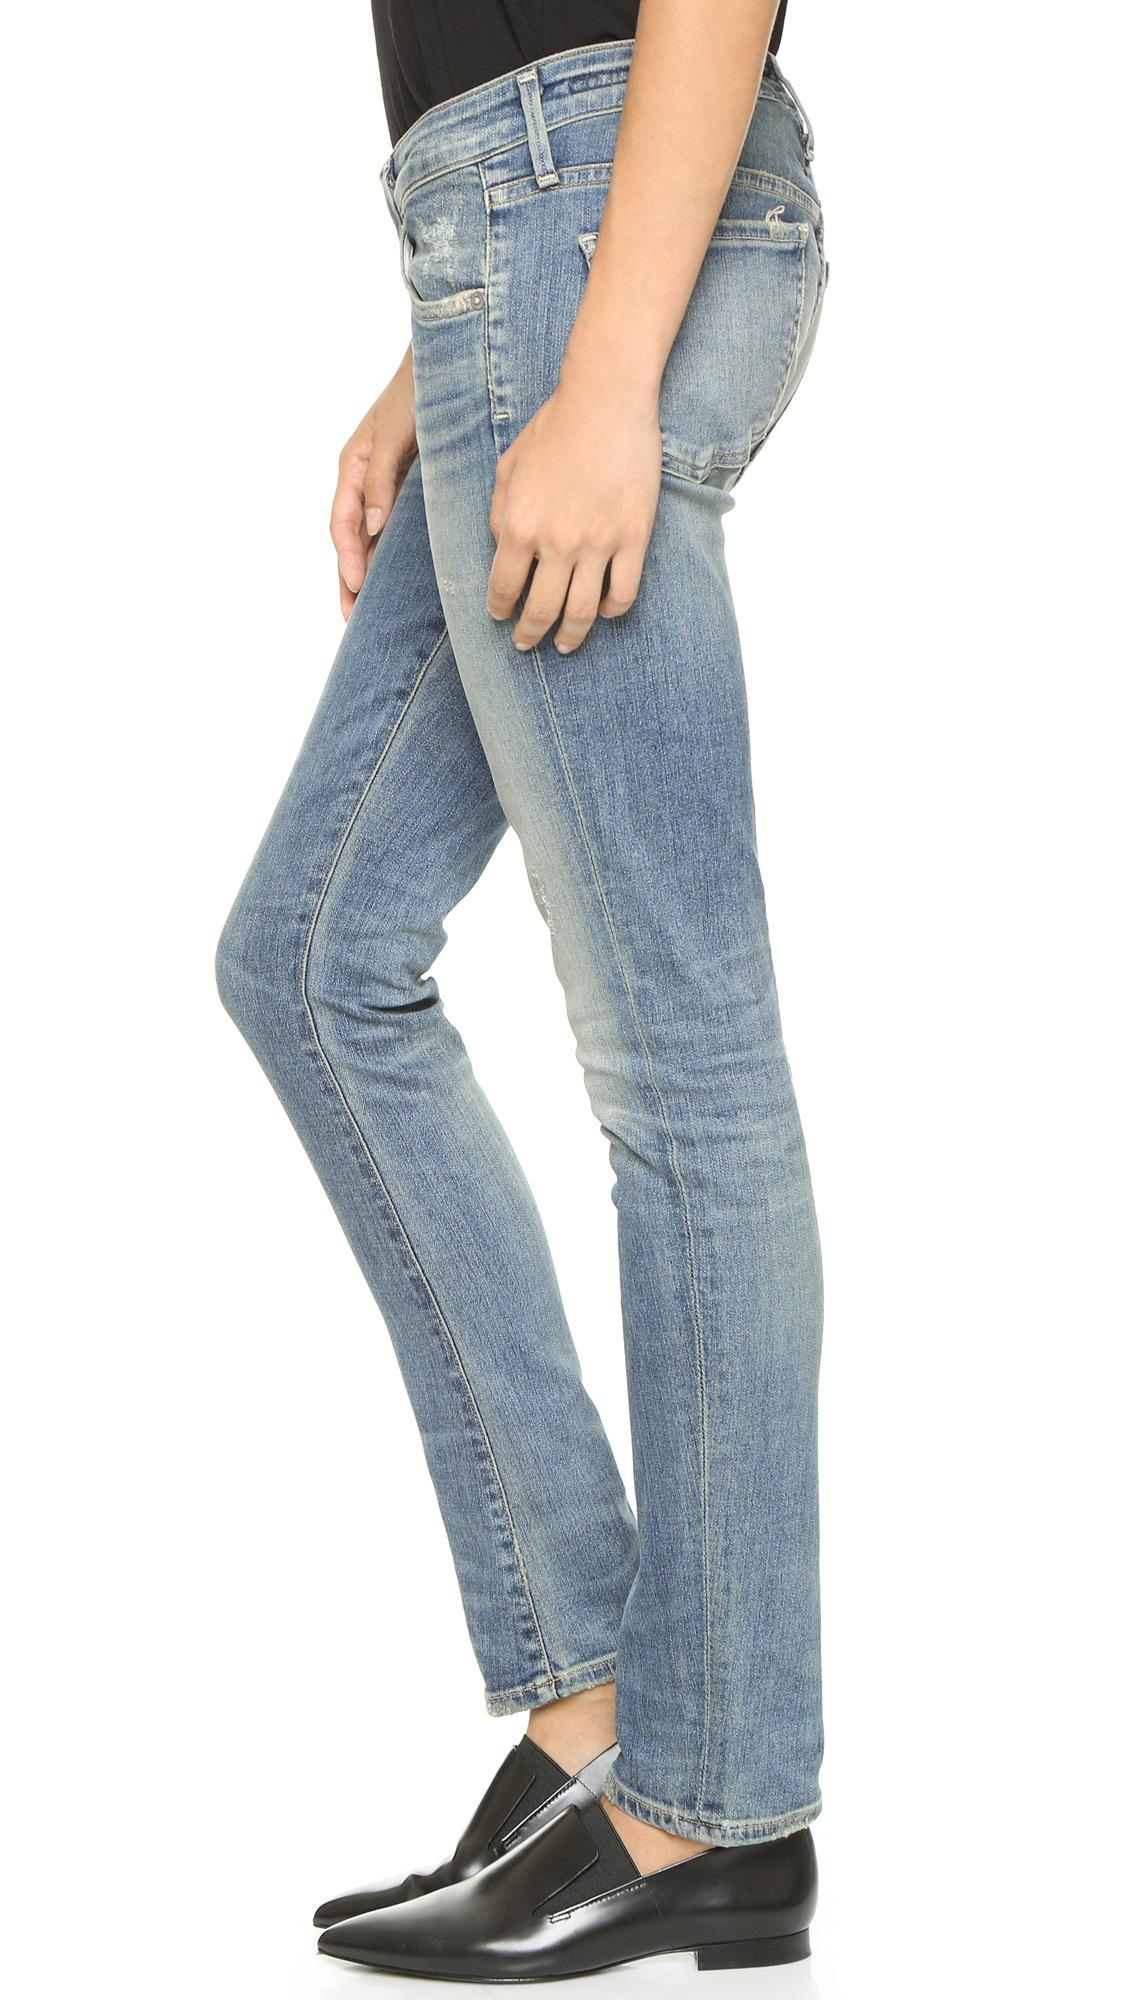 Citizens of Humanity Denim Racer Low Rise Skinny Jeans in Blue